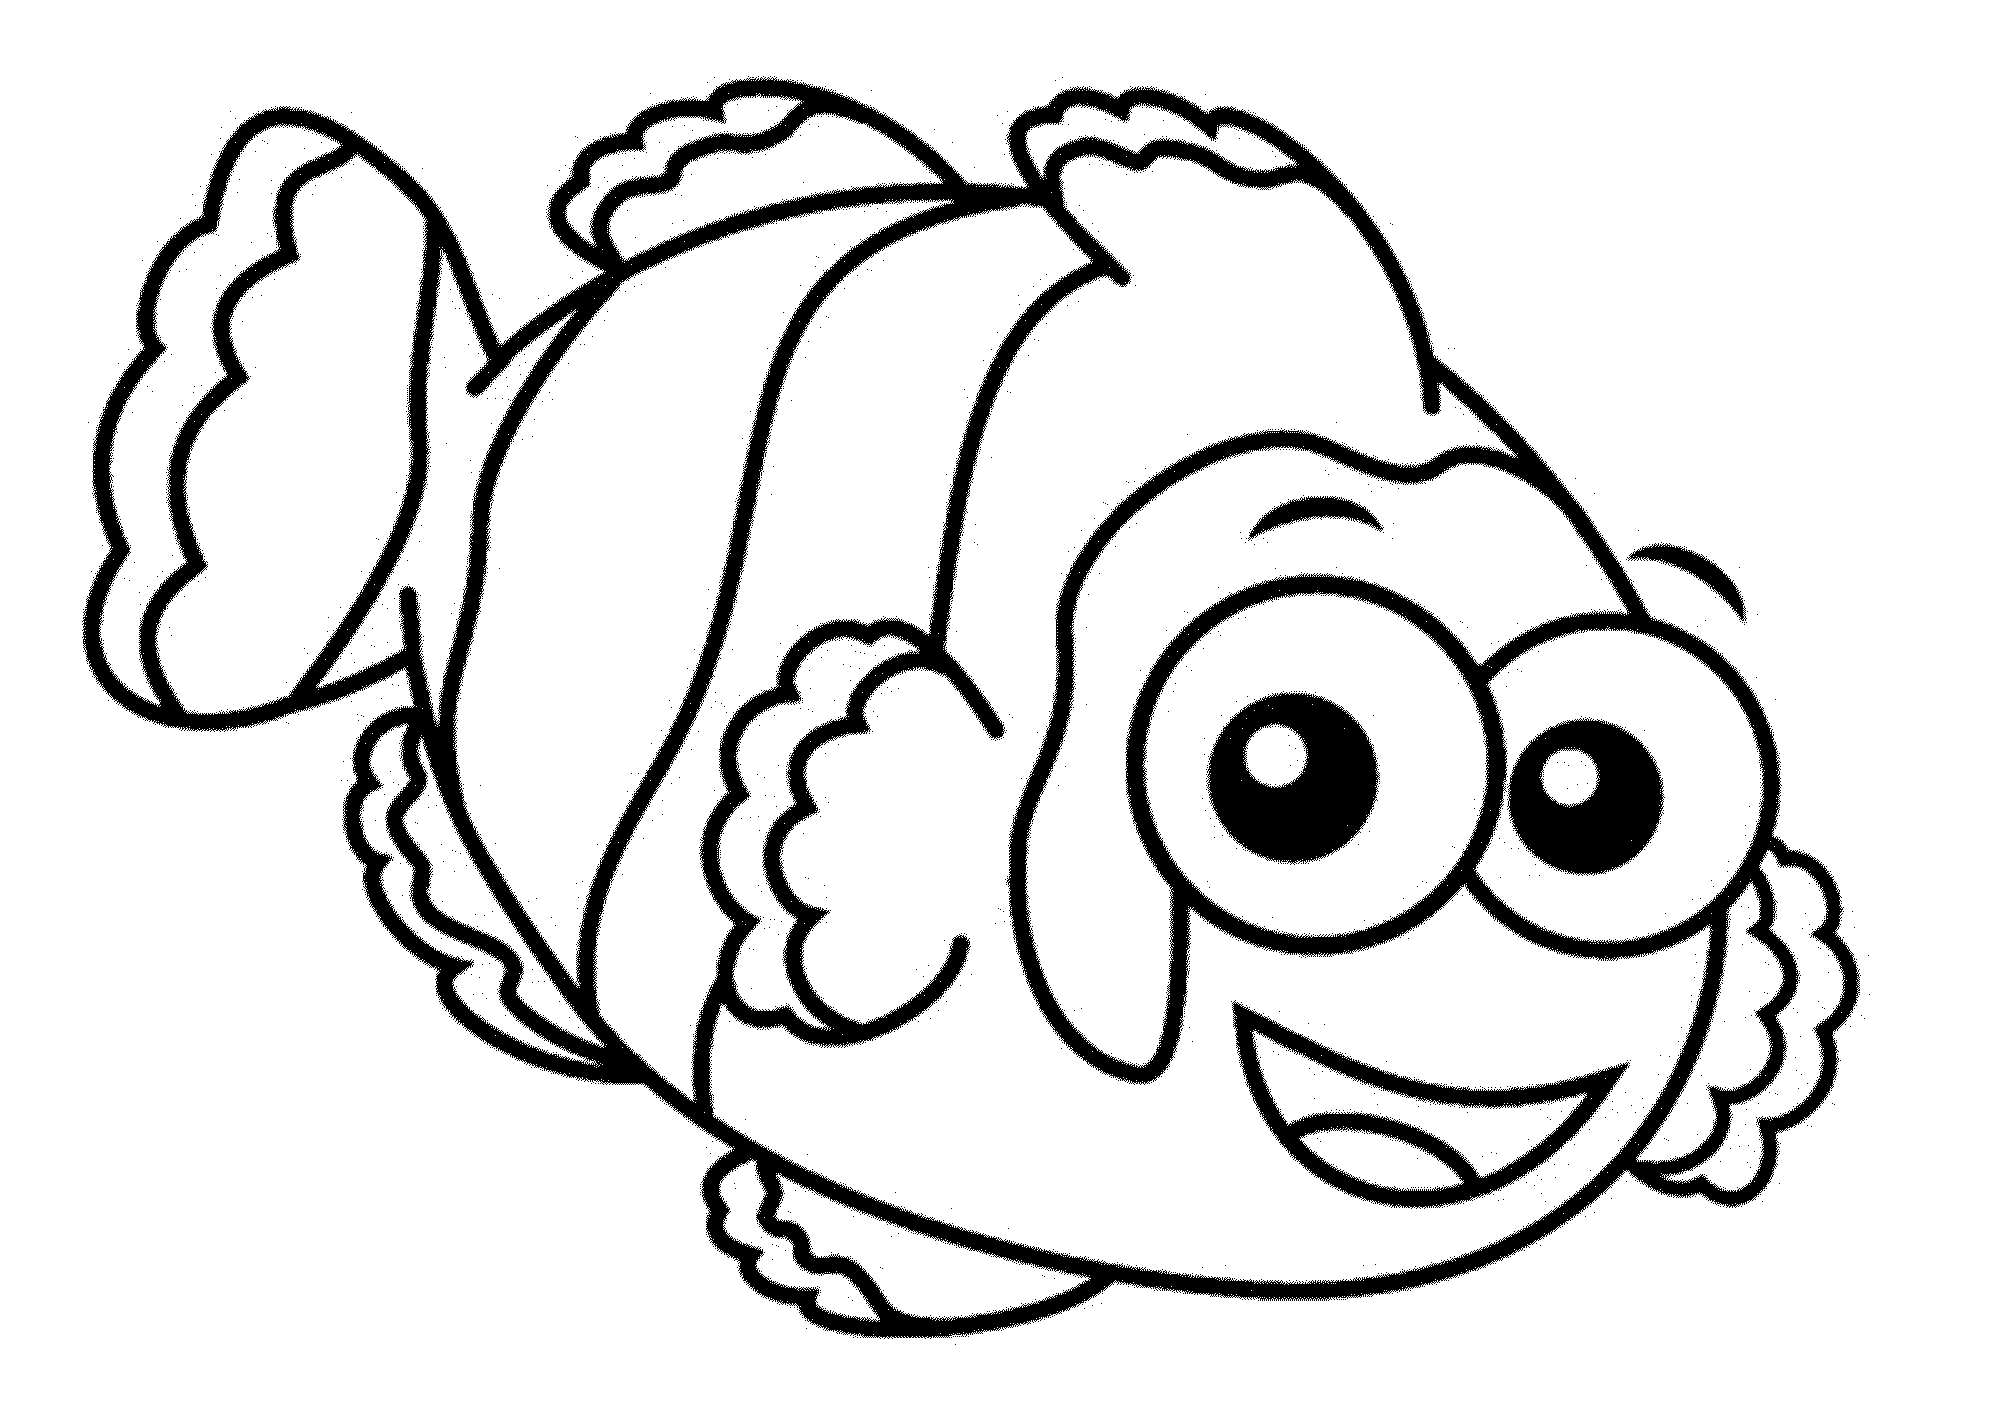 fish coloring pages to print - photo#16